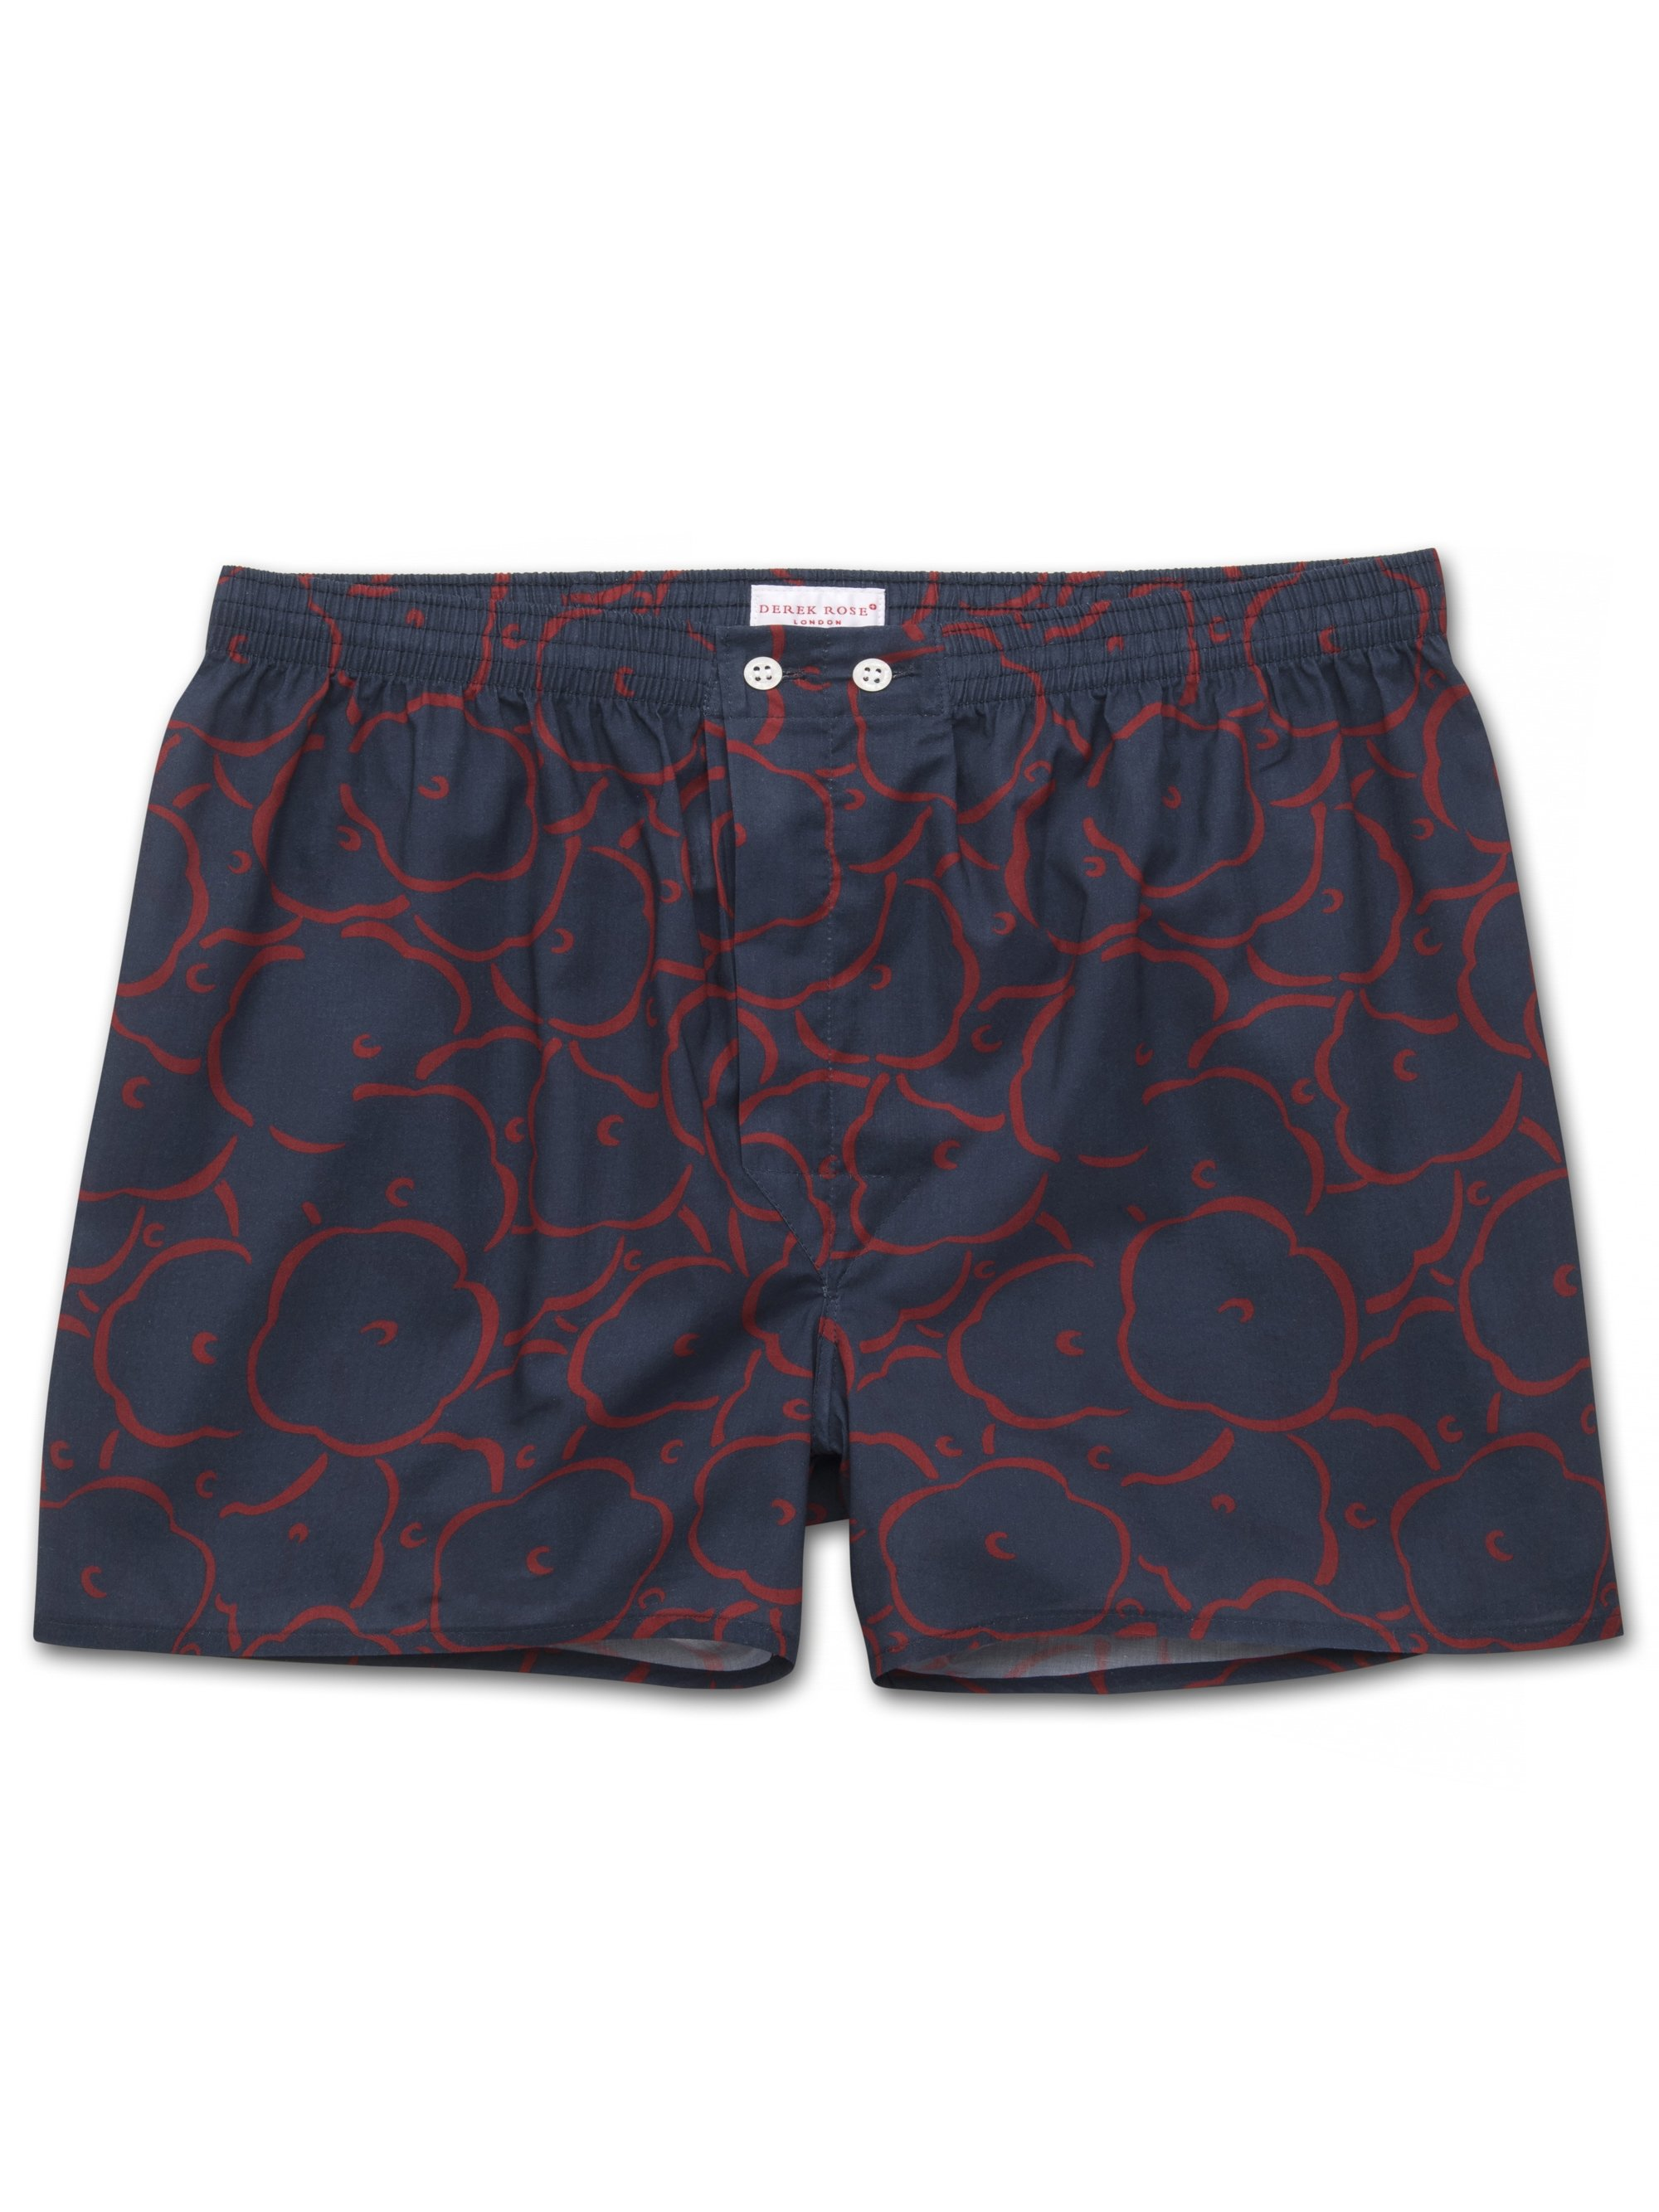 Men's Classic Fit Boxer Shorts Ledbury 30 Cotton Batiste Navy